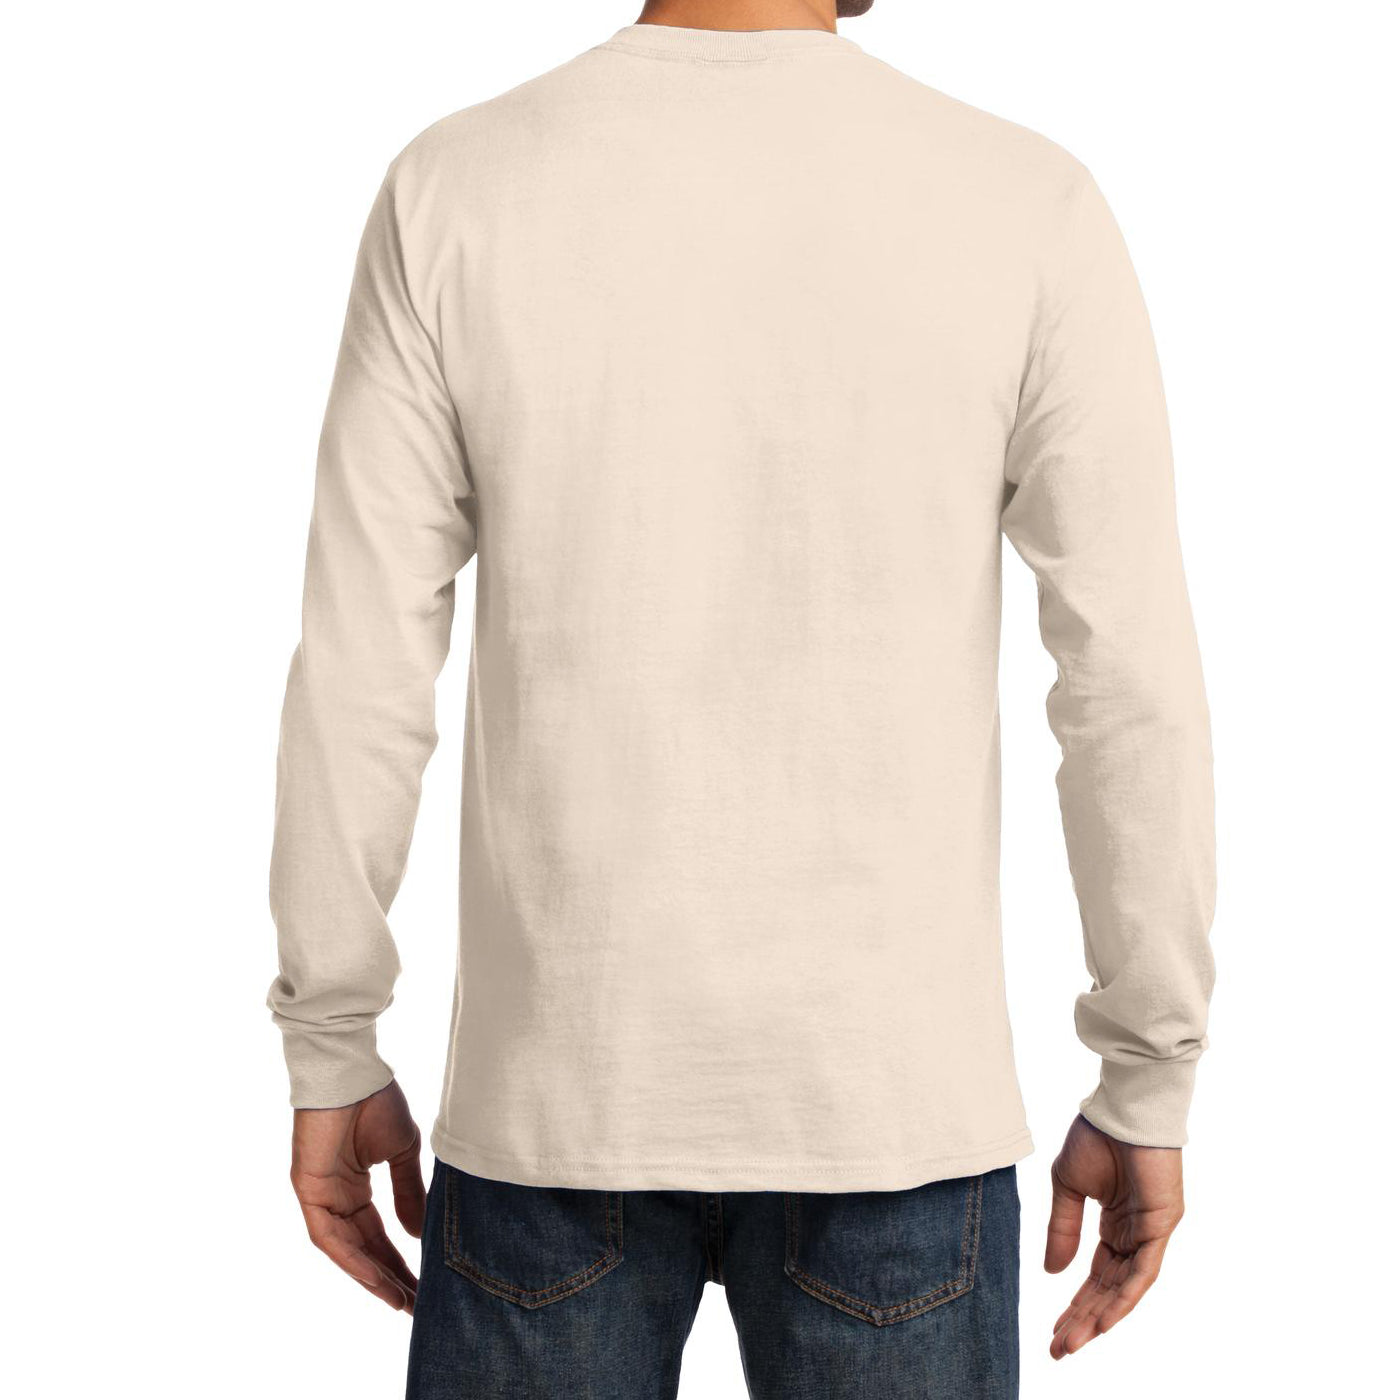 Men's Long Sleeve Essential Tee - Natural - Back